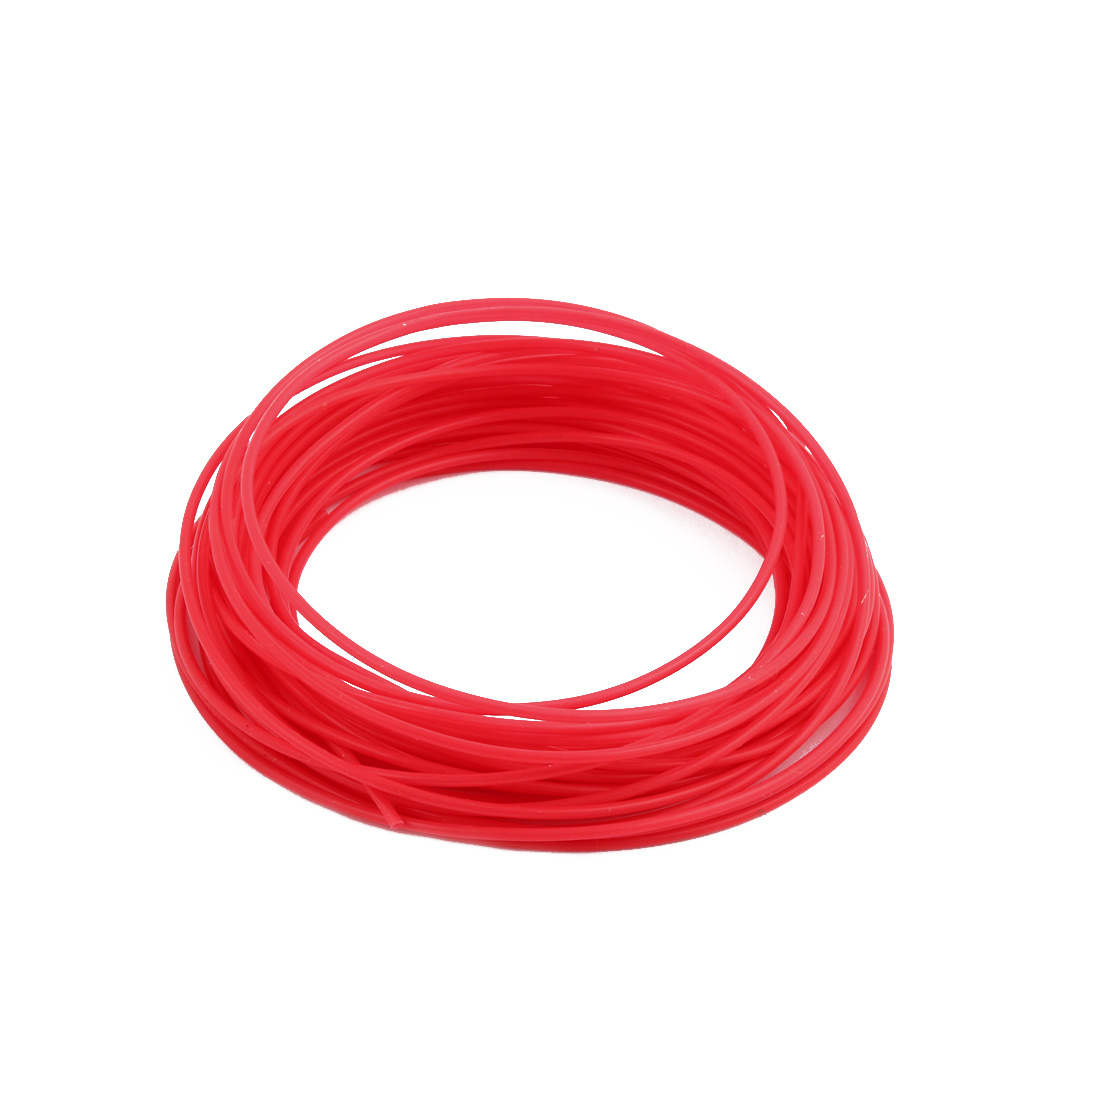 1.5mmx1.8mm PTFE Resistant High Temperature Red Tubing 10 Meters 32.8Ft